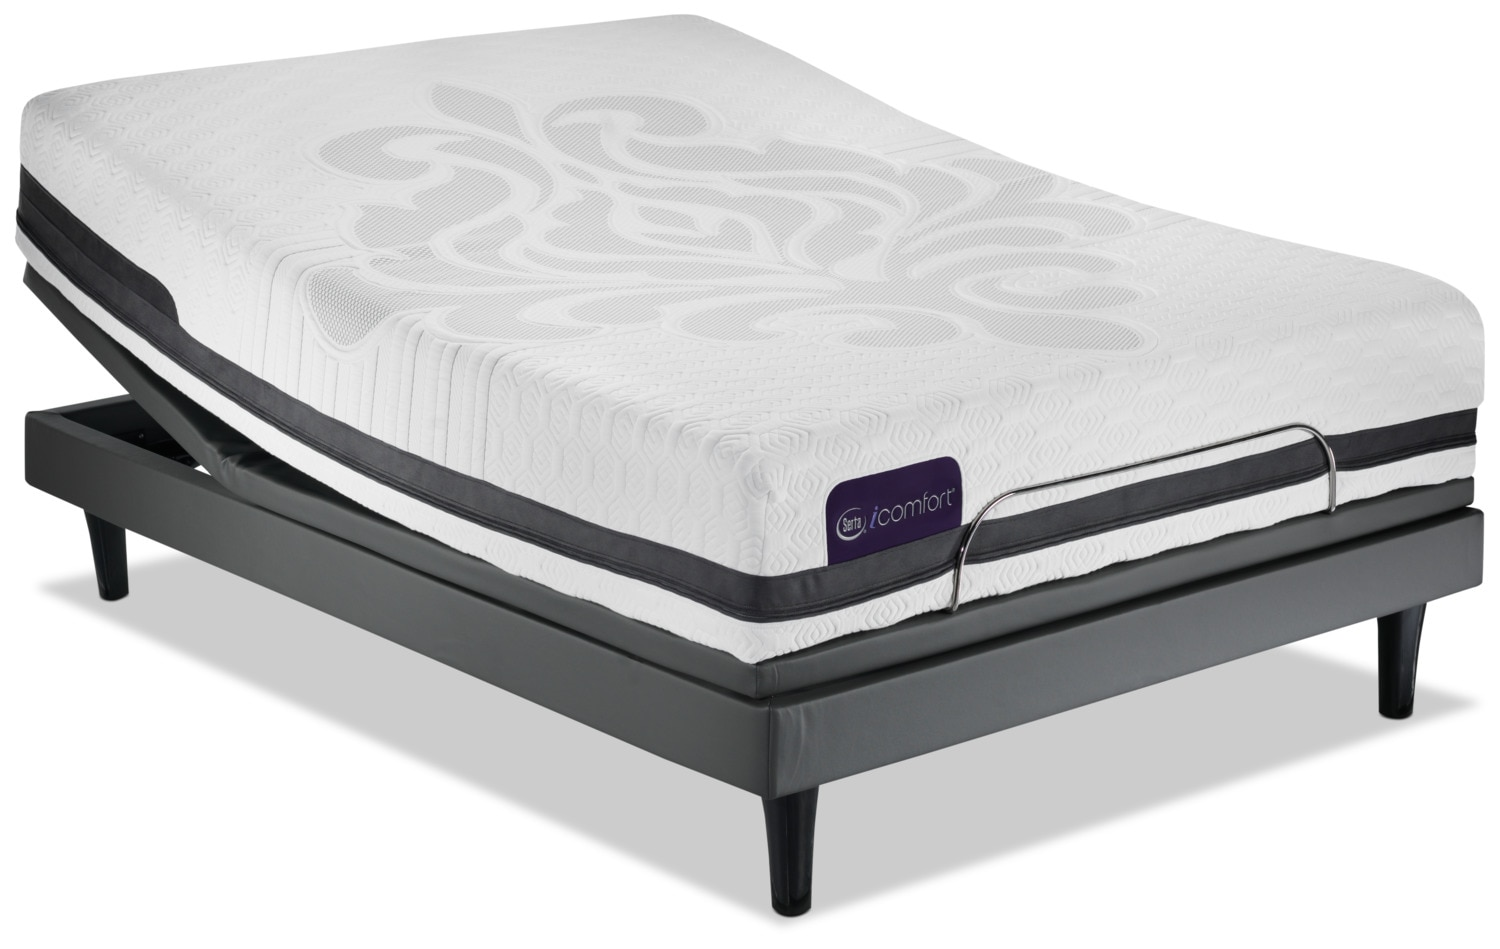 Serta iComfort Eco Peacefulness Plush Twin XL Mattress/Motion Perfect III Complete Adjustable Base